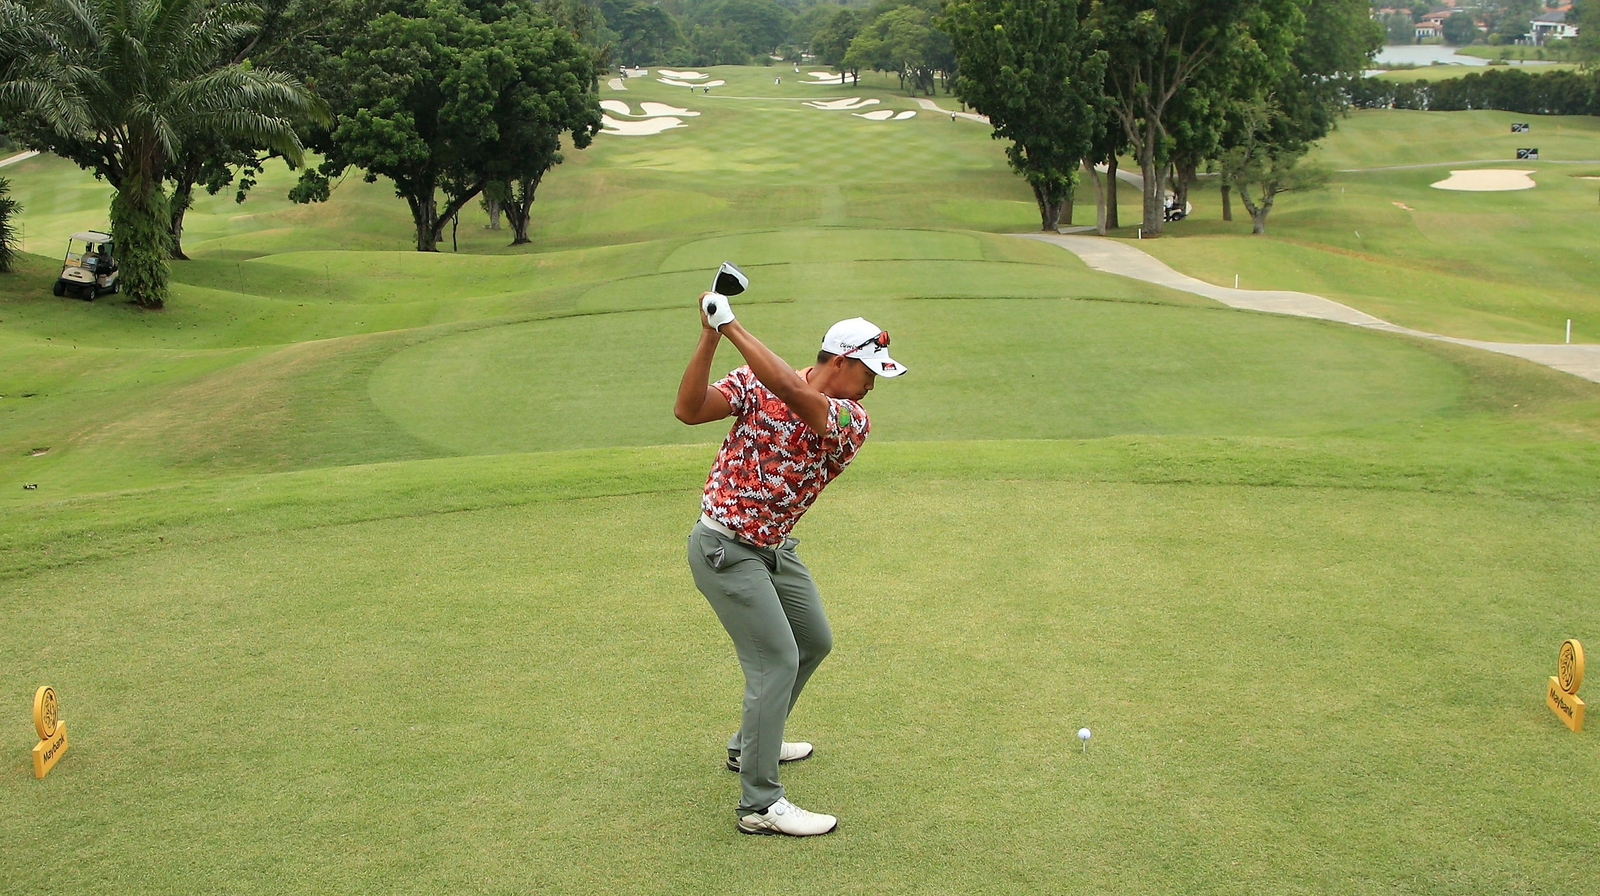 Golfer Arie Irawan found dead in his hotel room